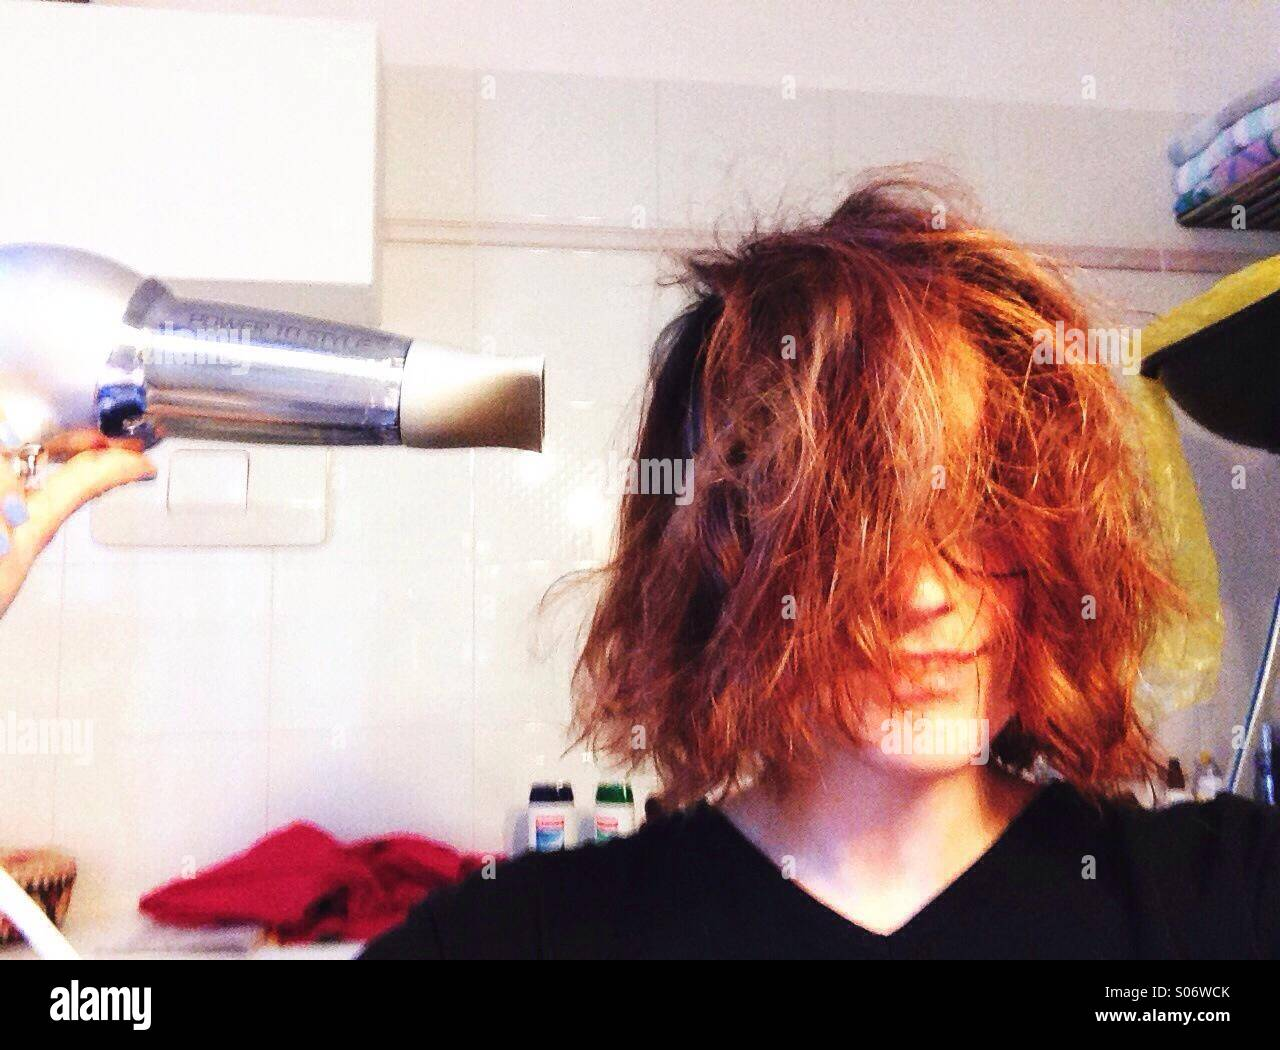 Girl blow drying her hair - Stock Image